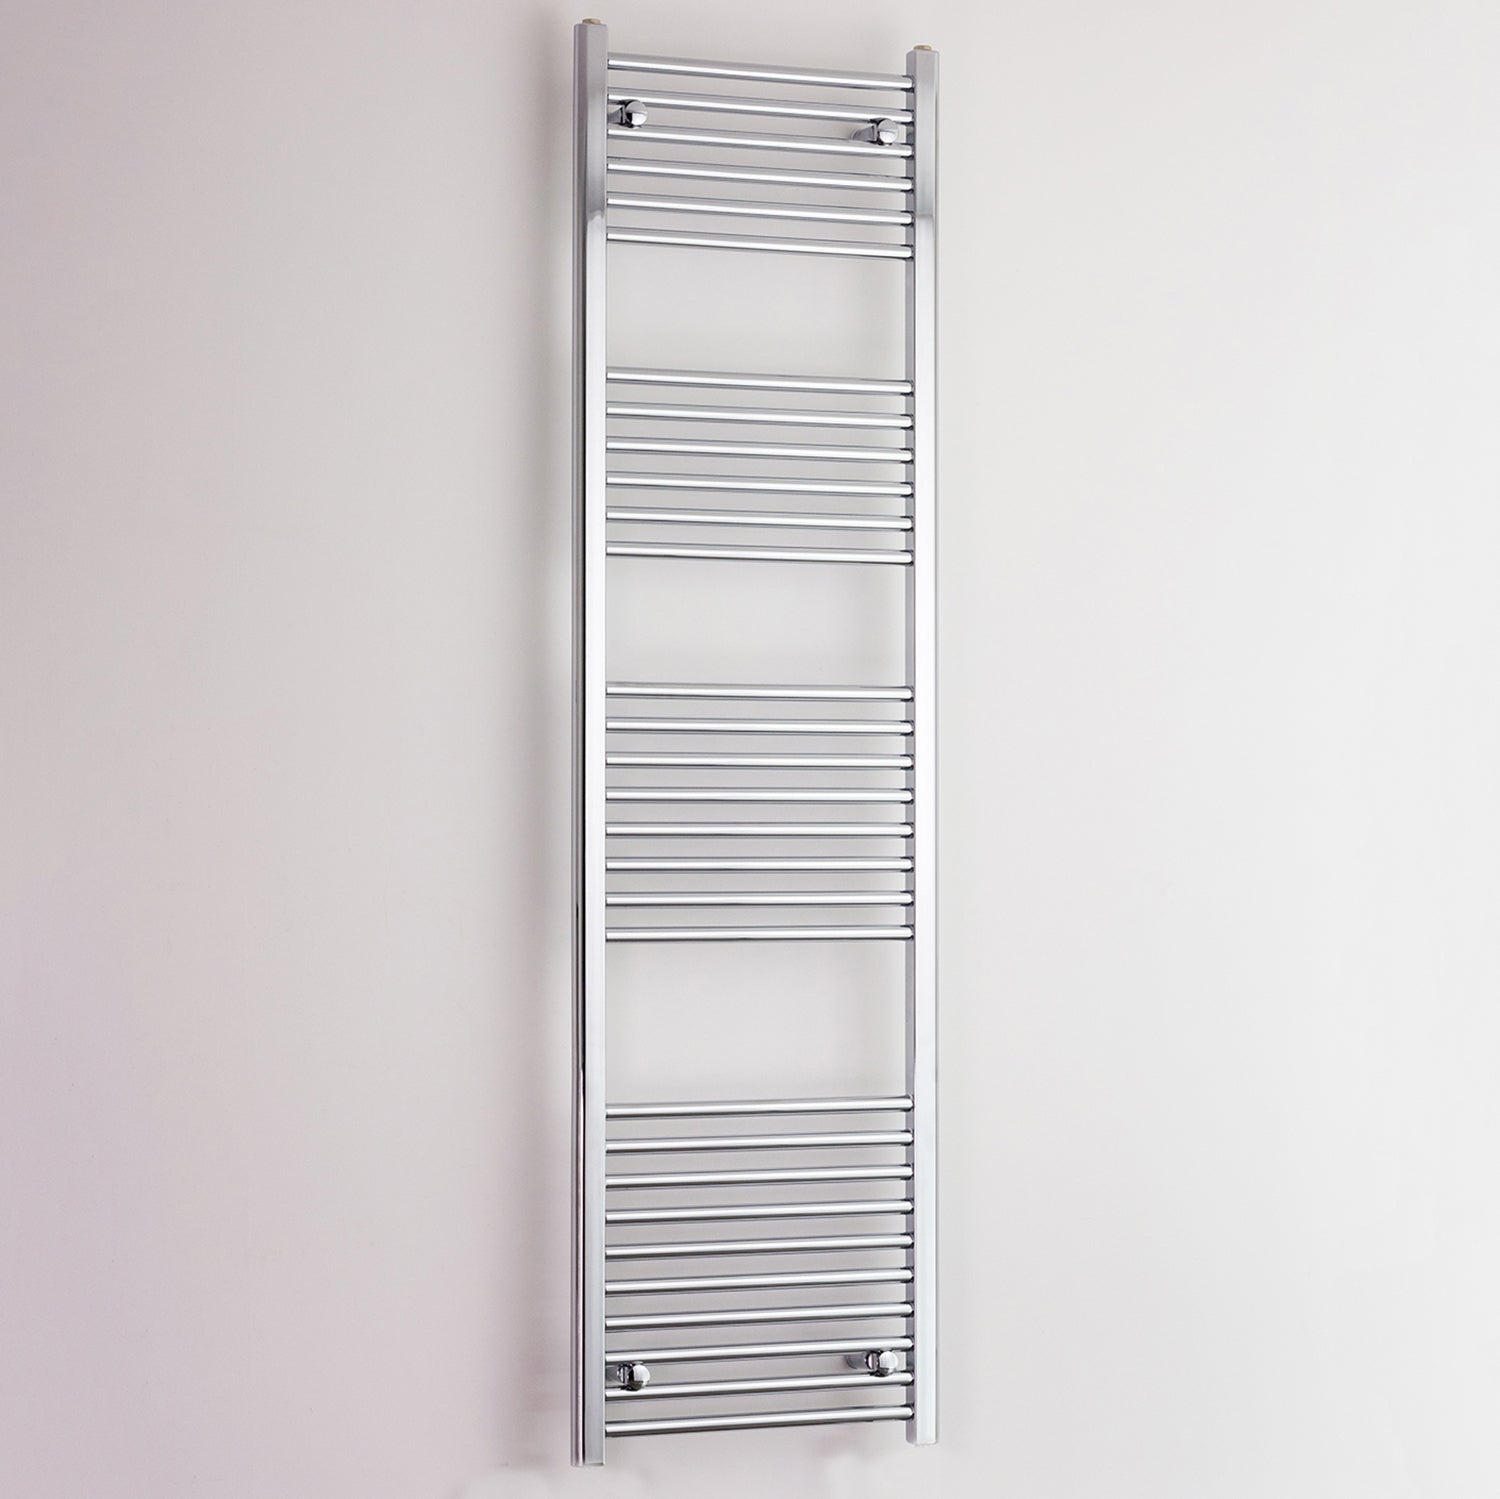 600mm Wide 1800mm High Flat Chrome Heated Towel Rail Radiator HTR,Towel Rail Only